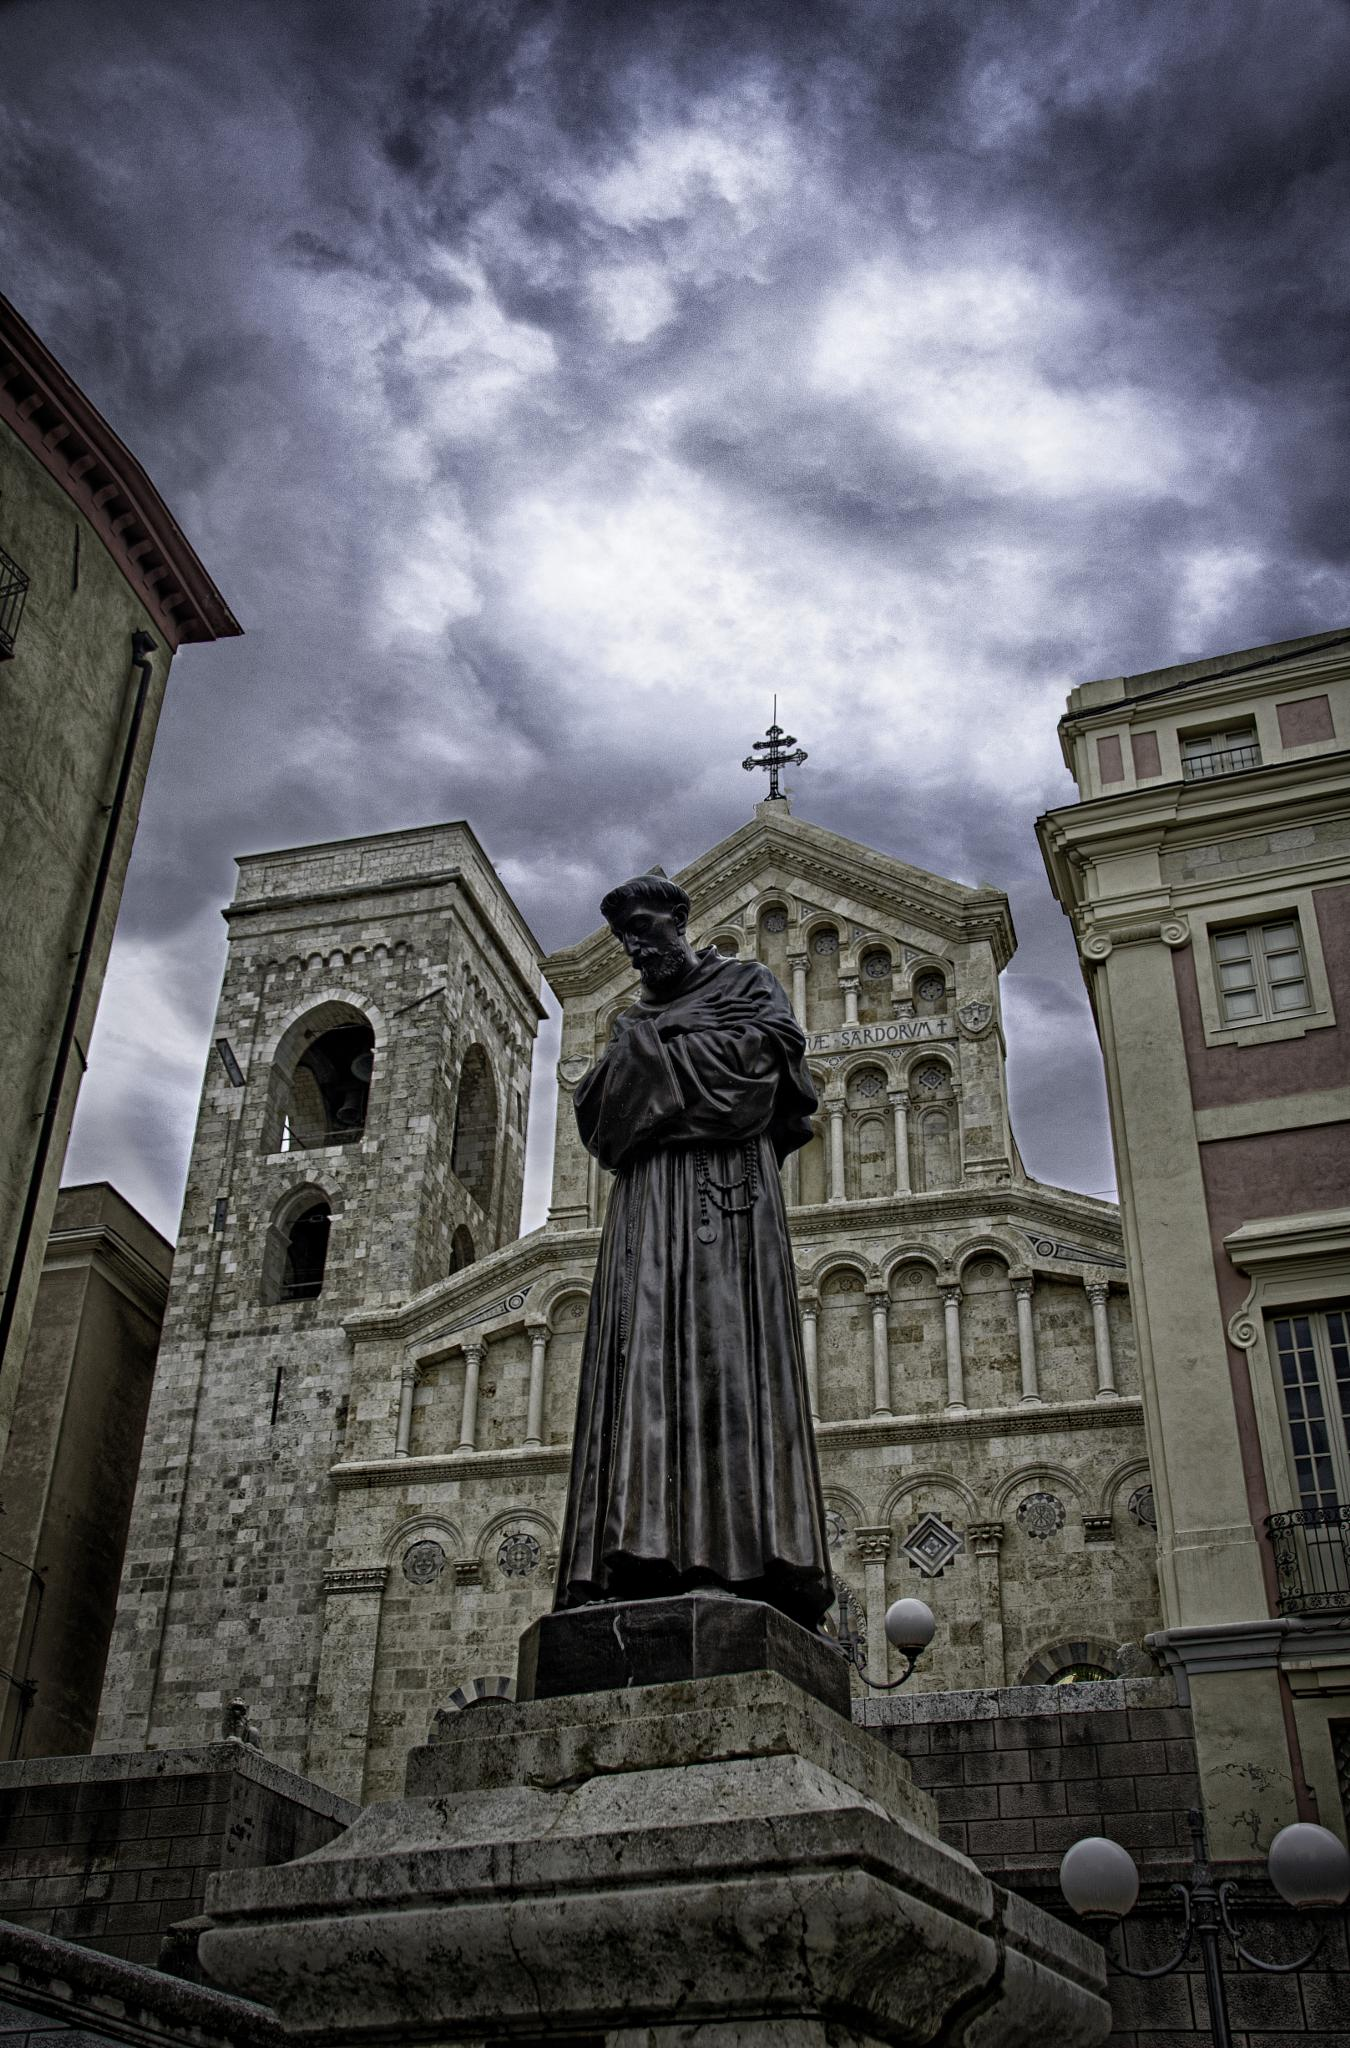 The saint, the cathedral and the clouds by Dr. weird